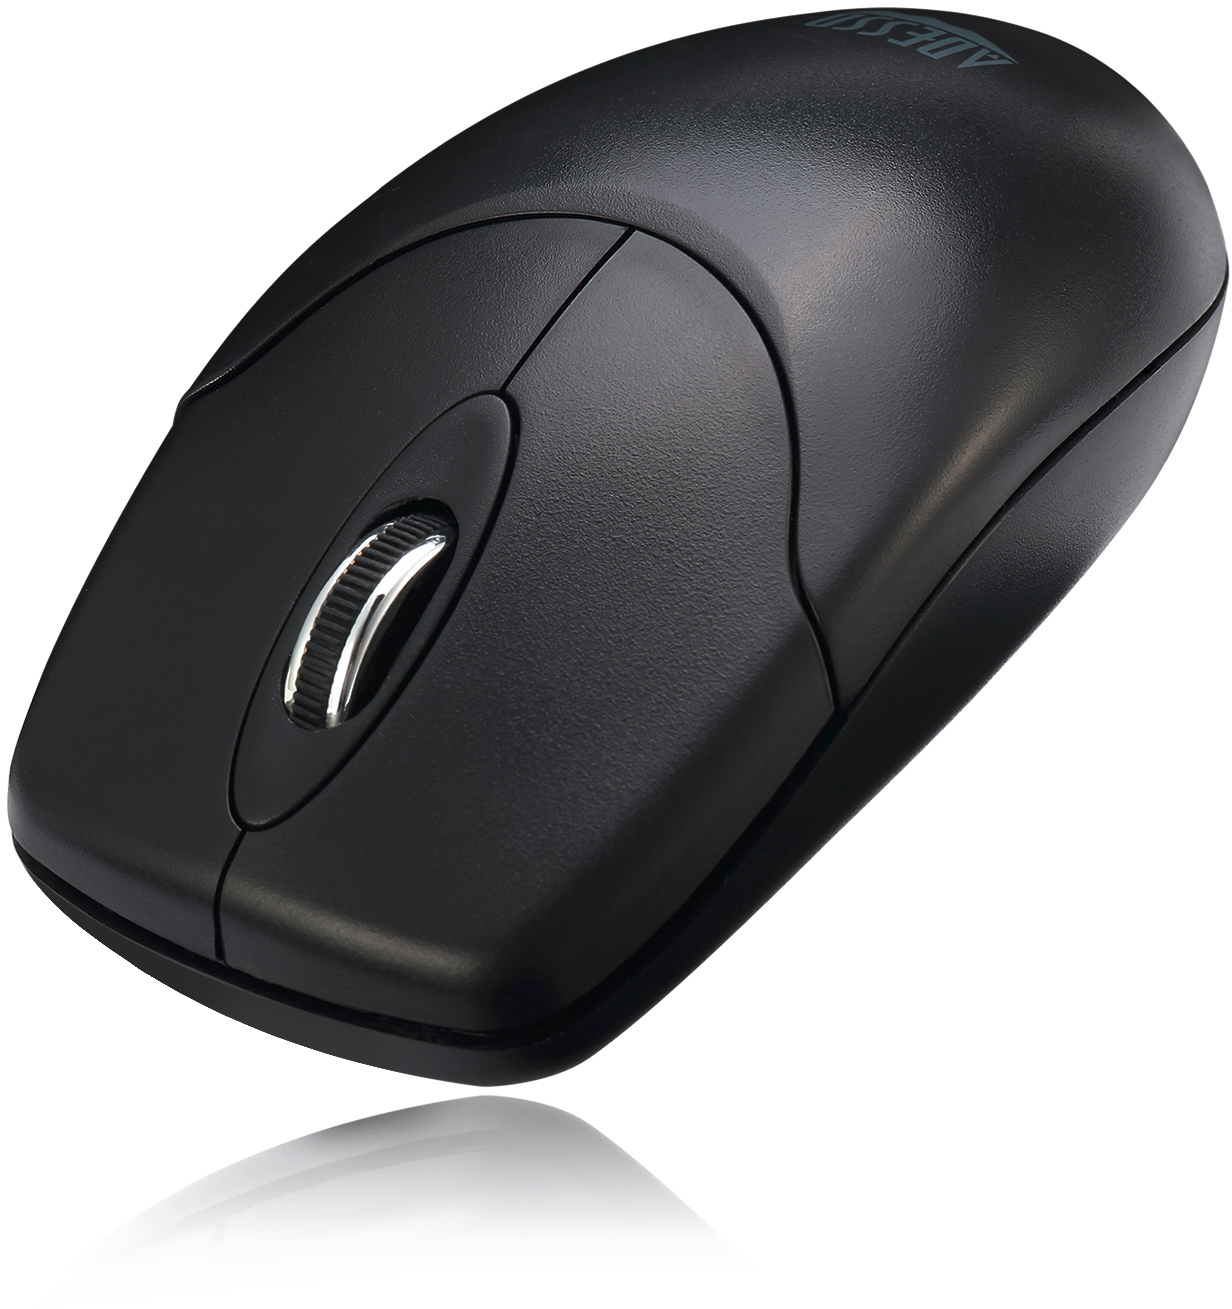 Adesso IMouse M40   2.4GHz Wireless Optical Mouse Alternate-Image2